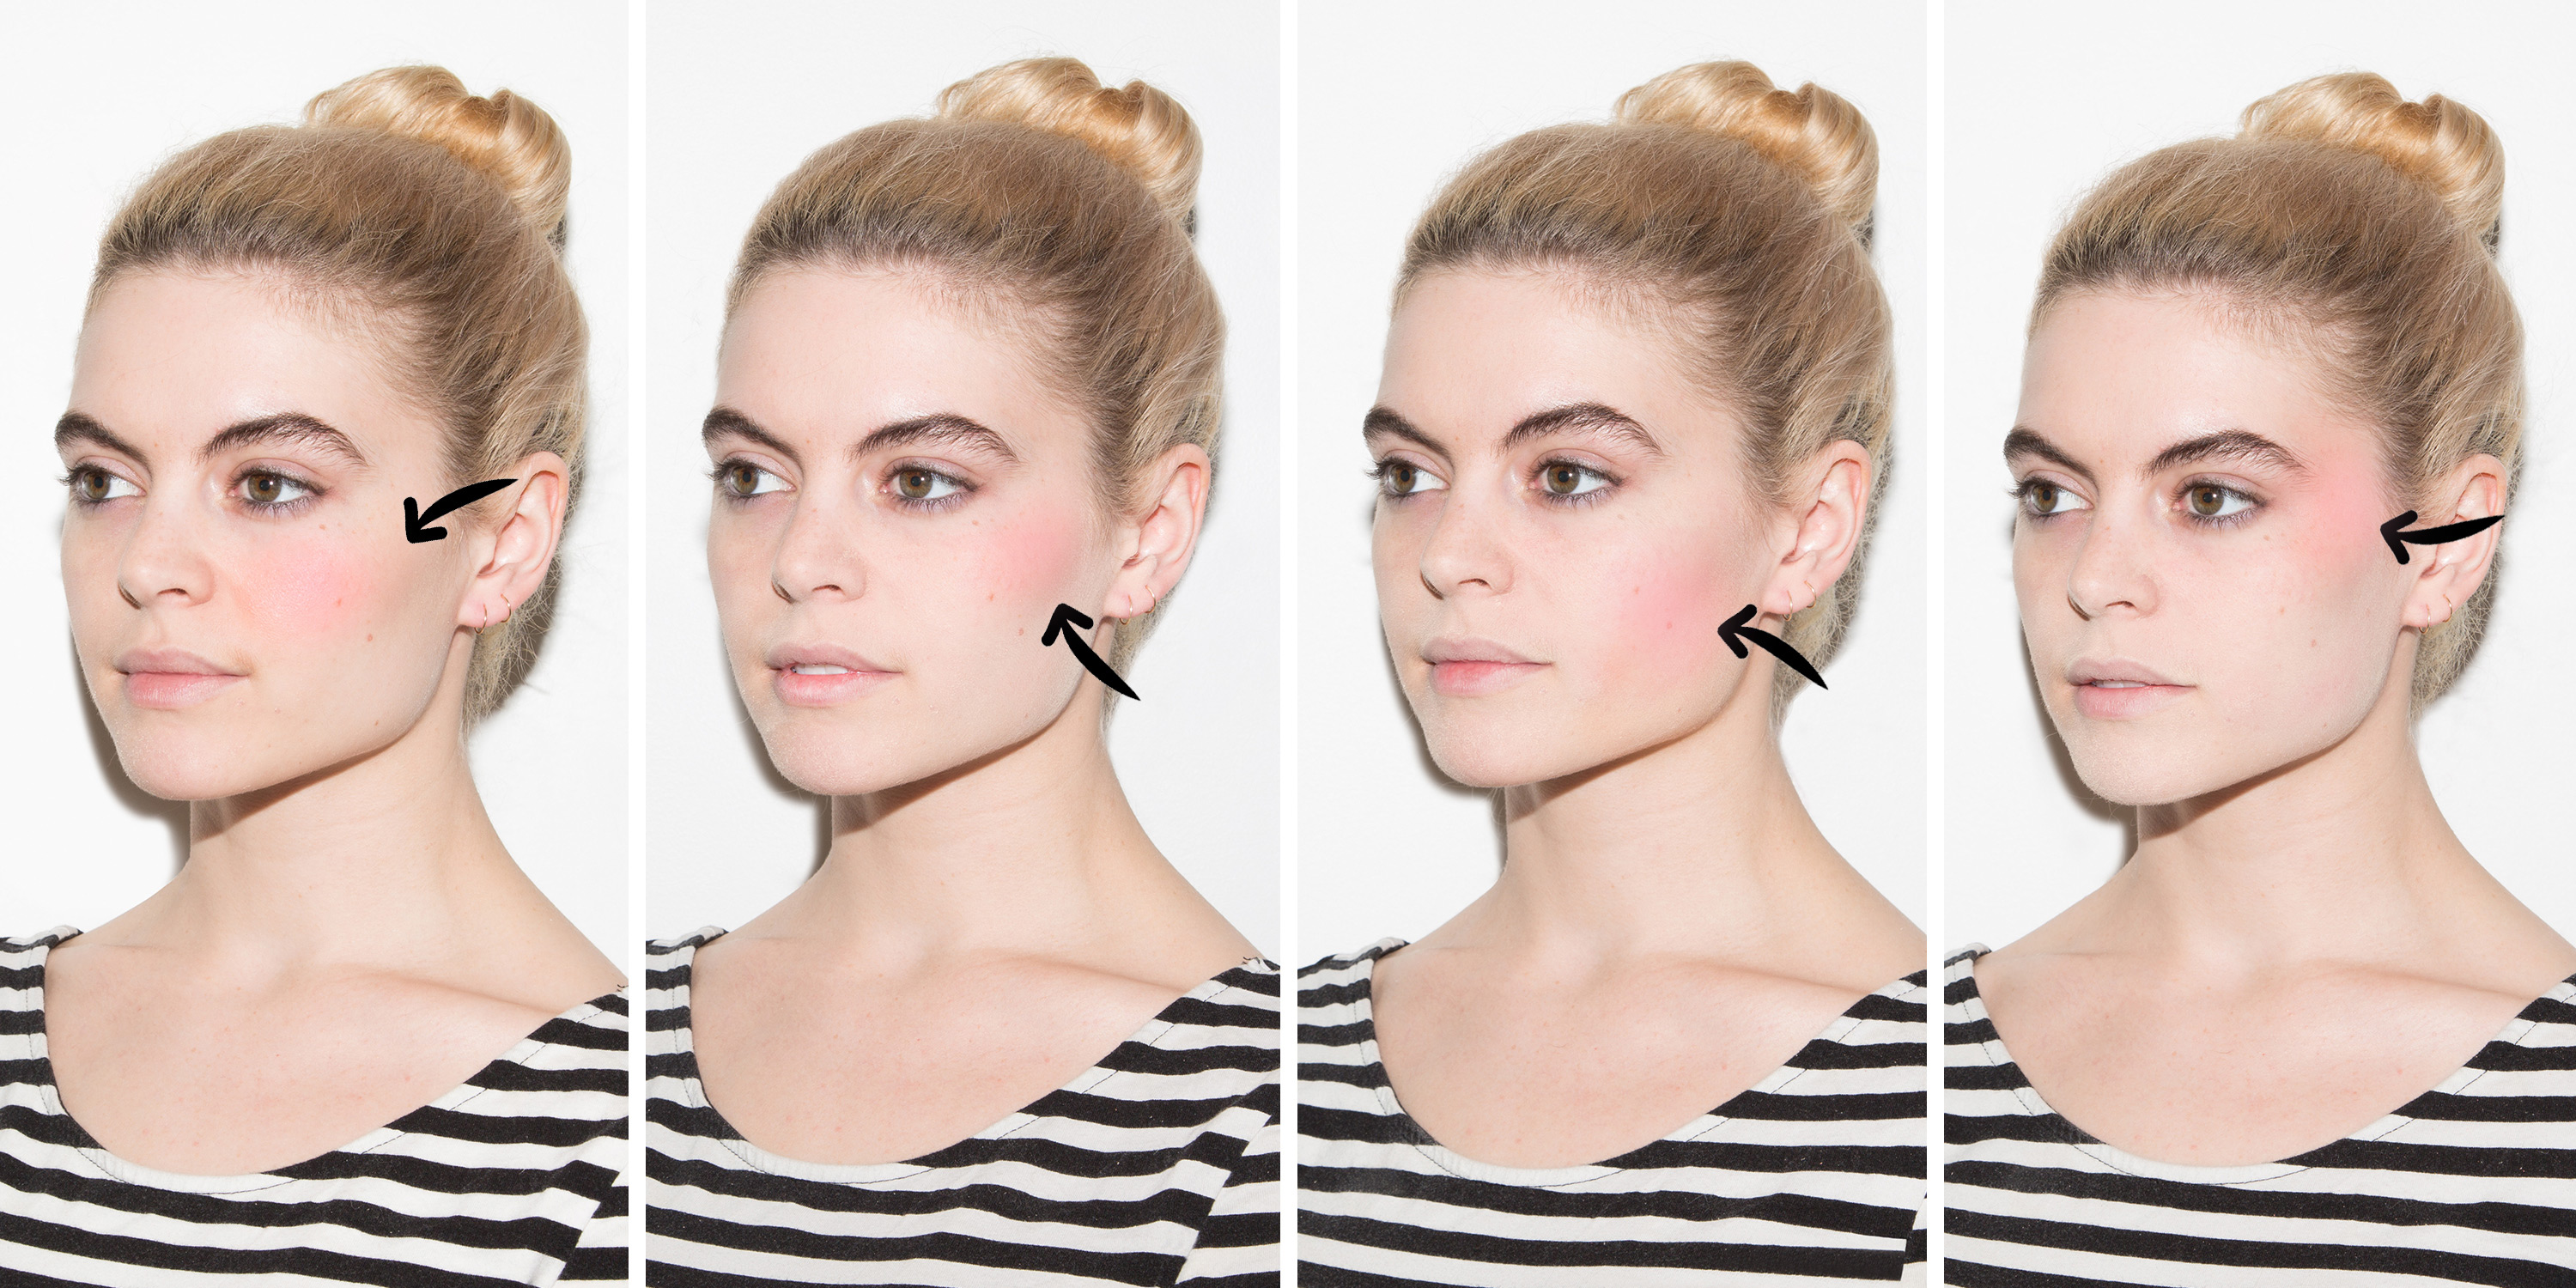 How to Apply Blush in 4 Steps